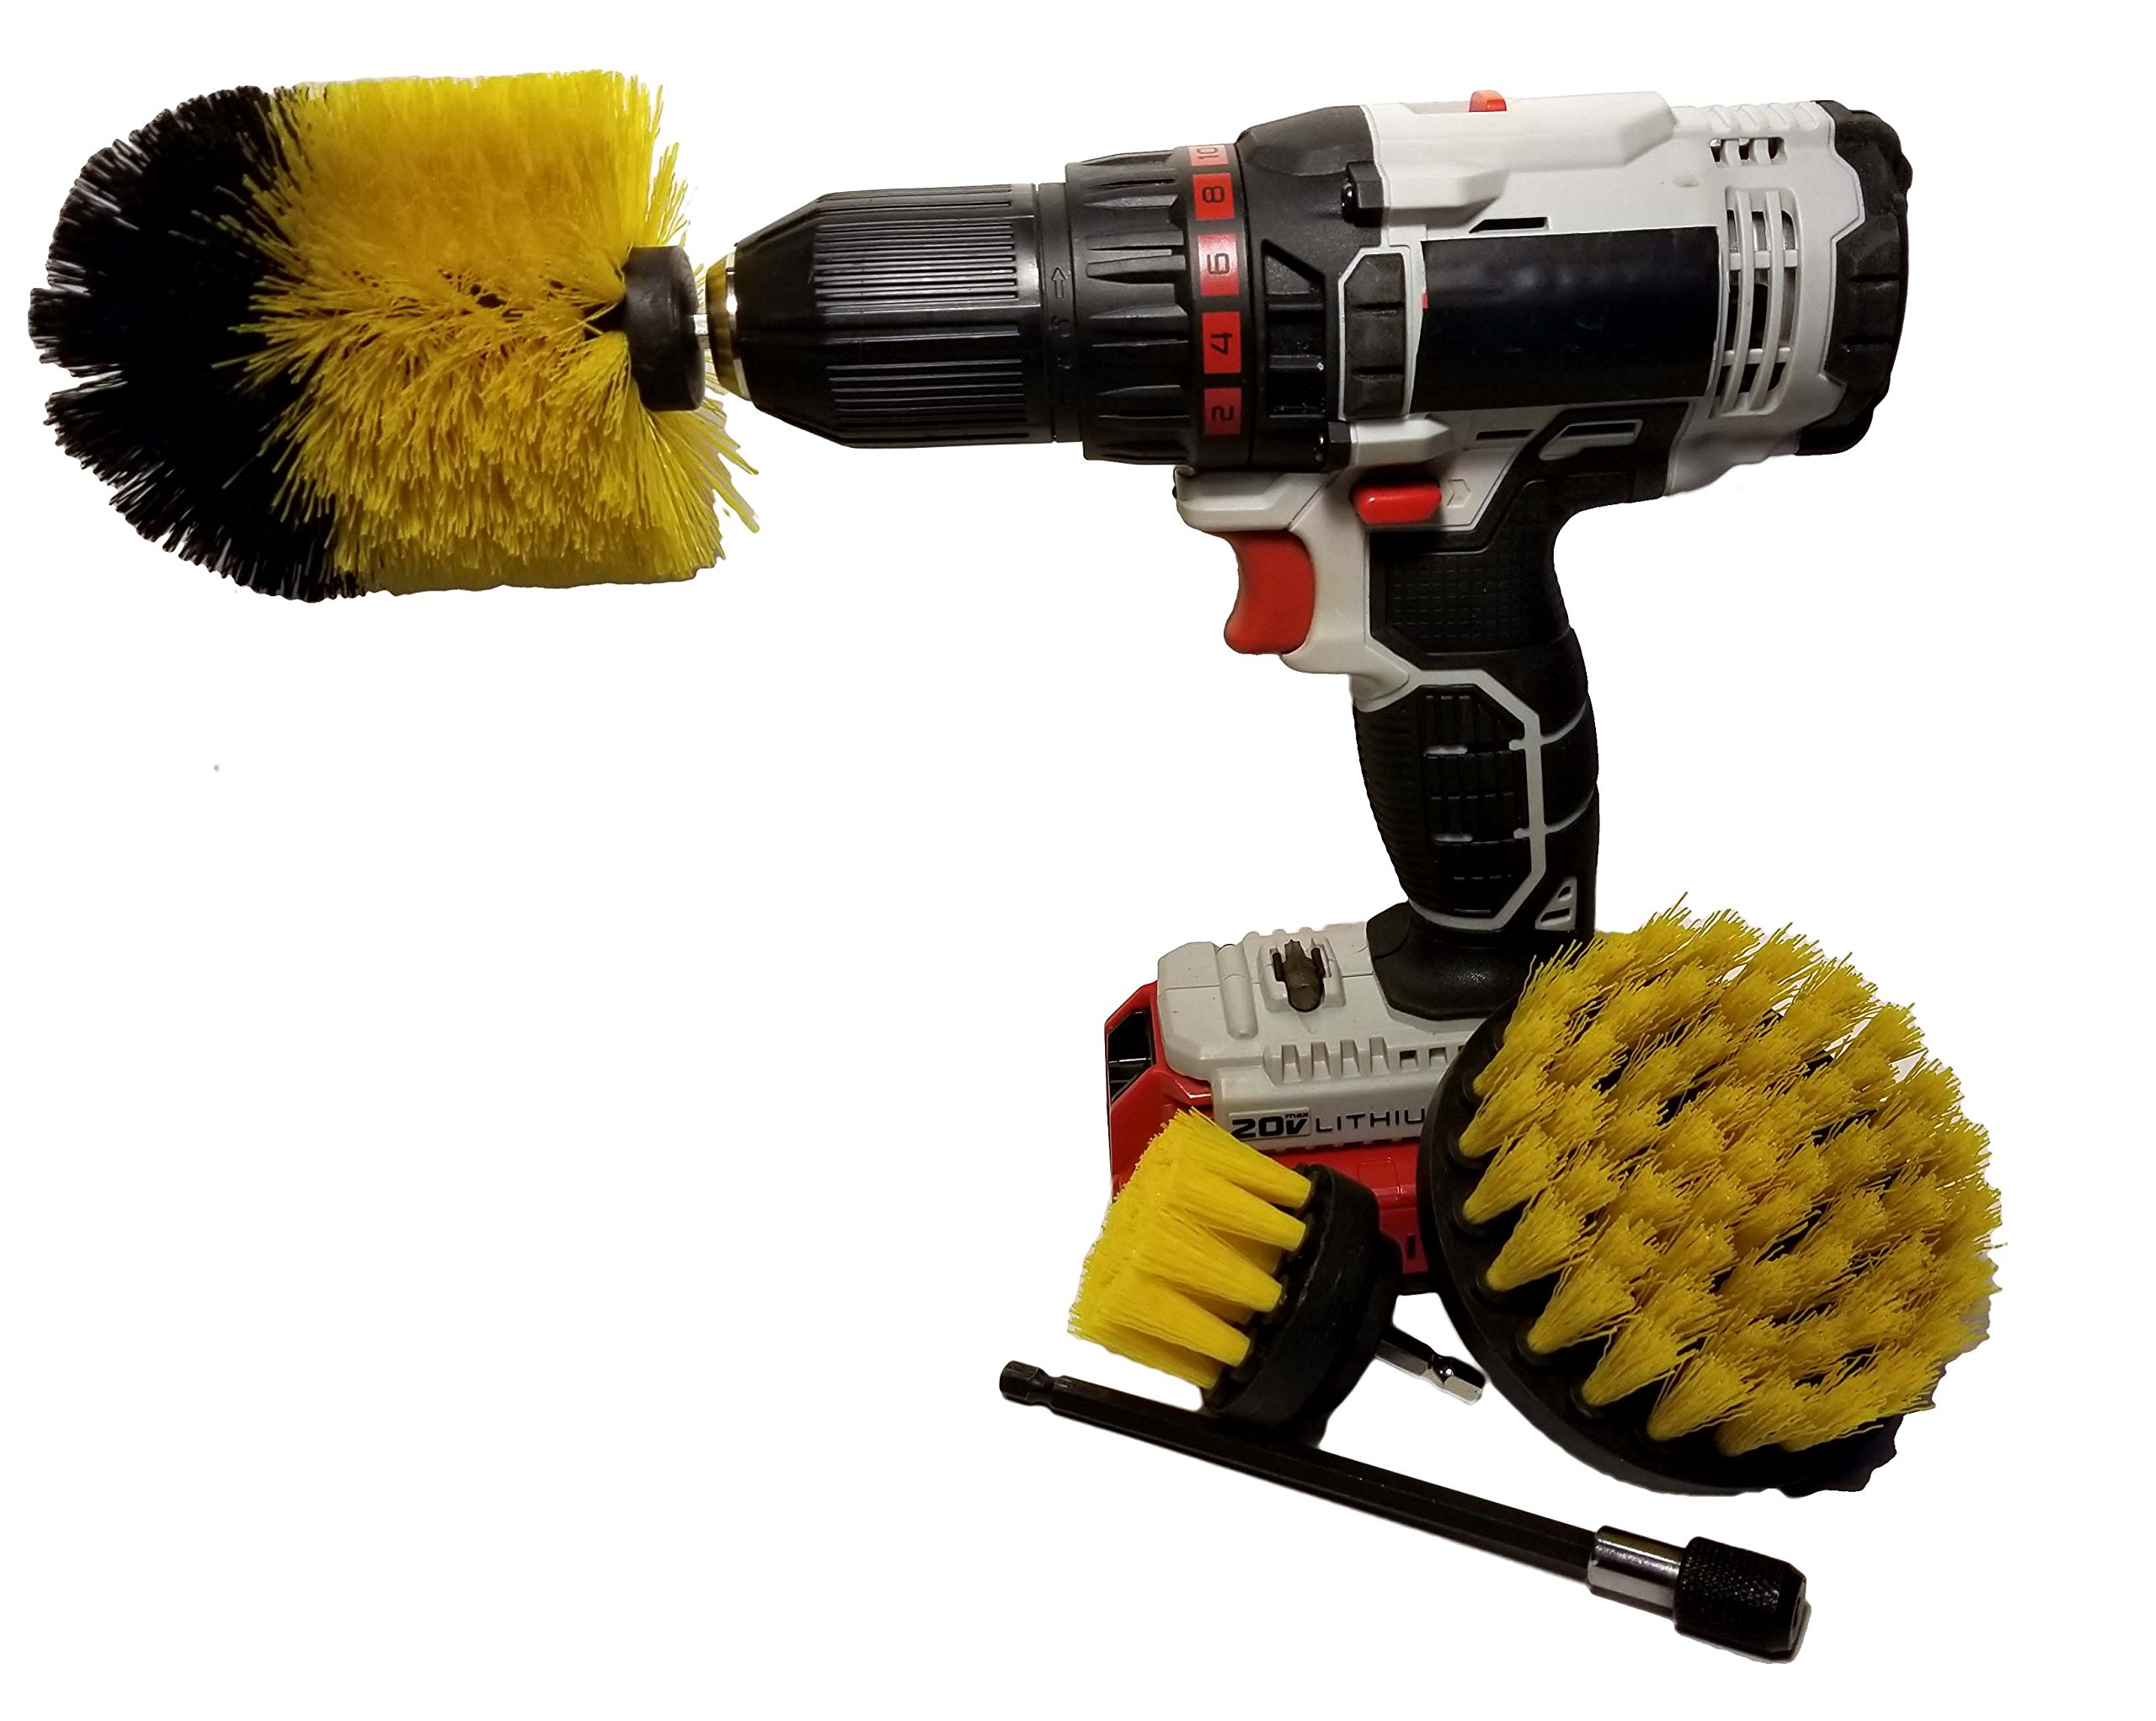 Down Home Designs Drill Brush Power Scrubber 4 piece kit with 6'' extender. Brushes attach to most drills for all general purpose cleaning and scrubbing!